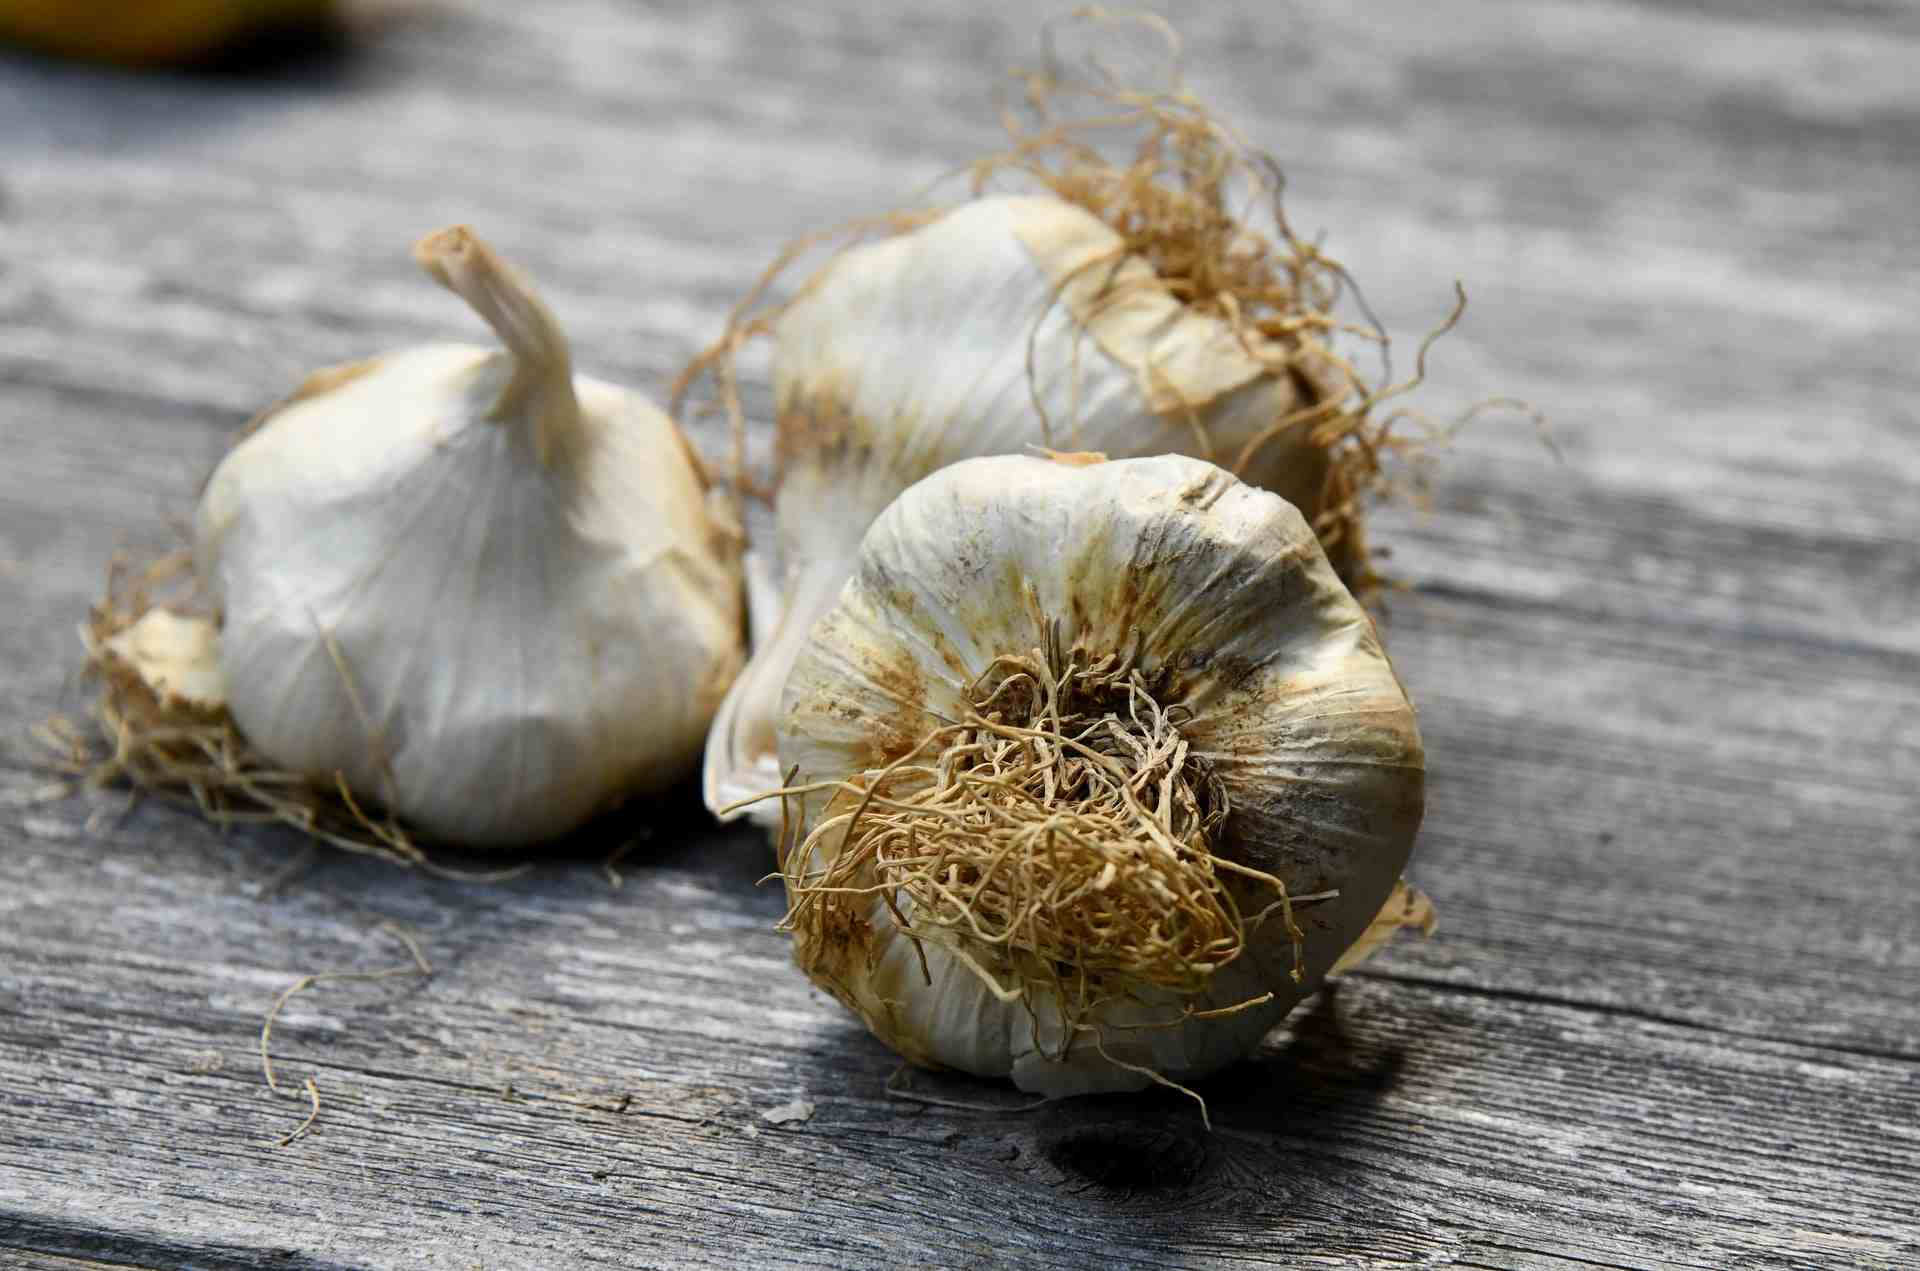 Is Pickled Garlic Good for You?